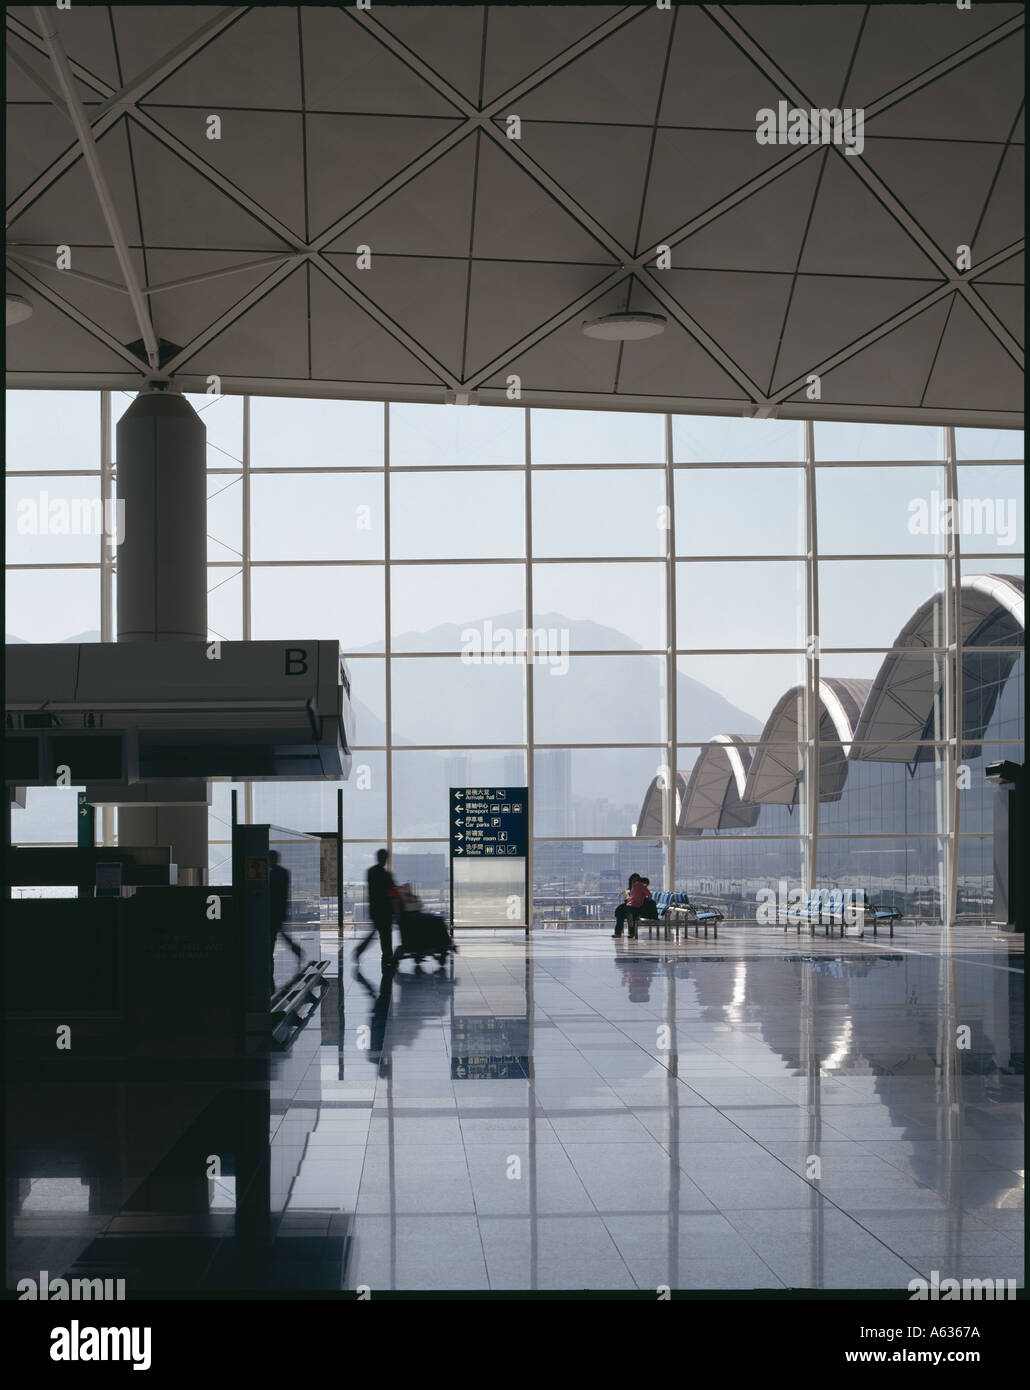 Hong Kong International Airport, Chek Lap Kok  Looking out from Check-in Area. Architect: Foster and Partners - Stock Image